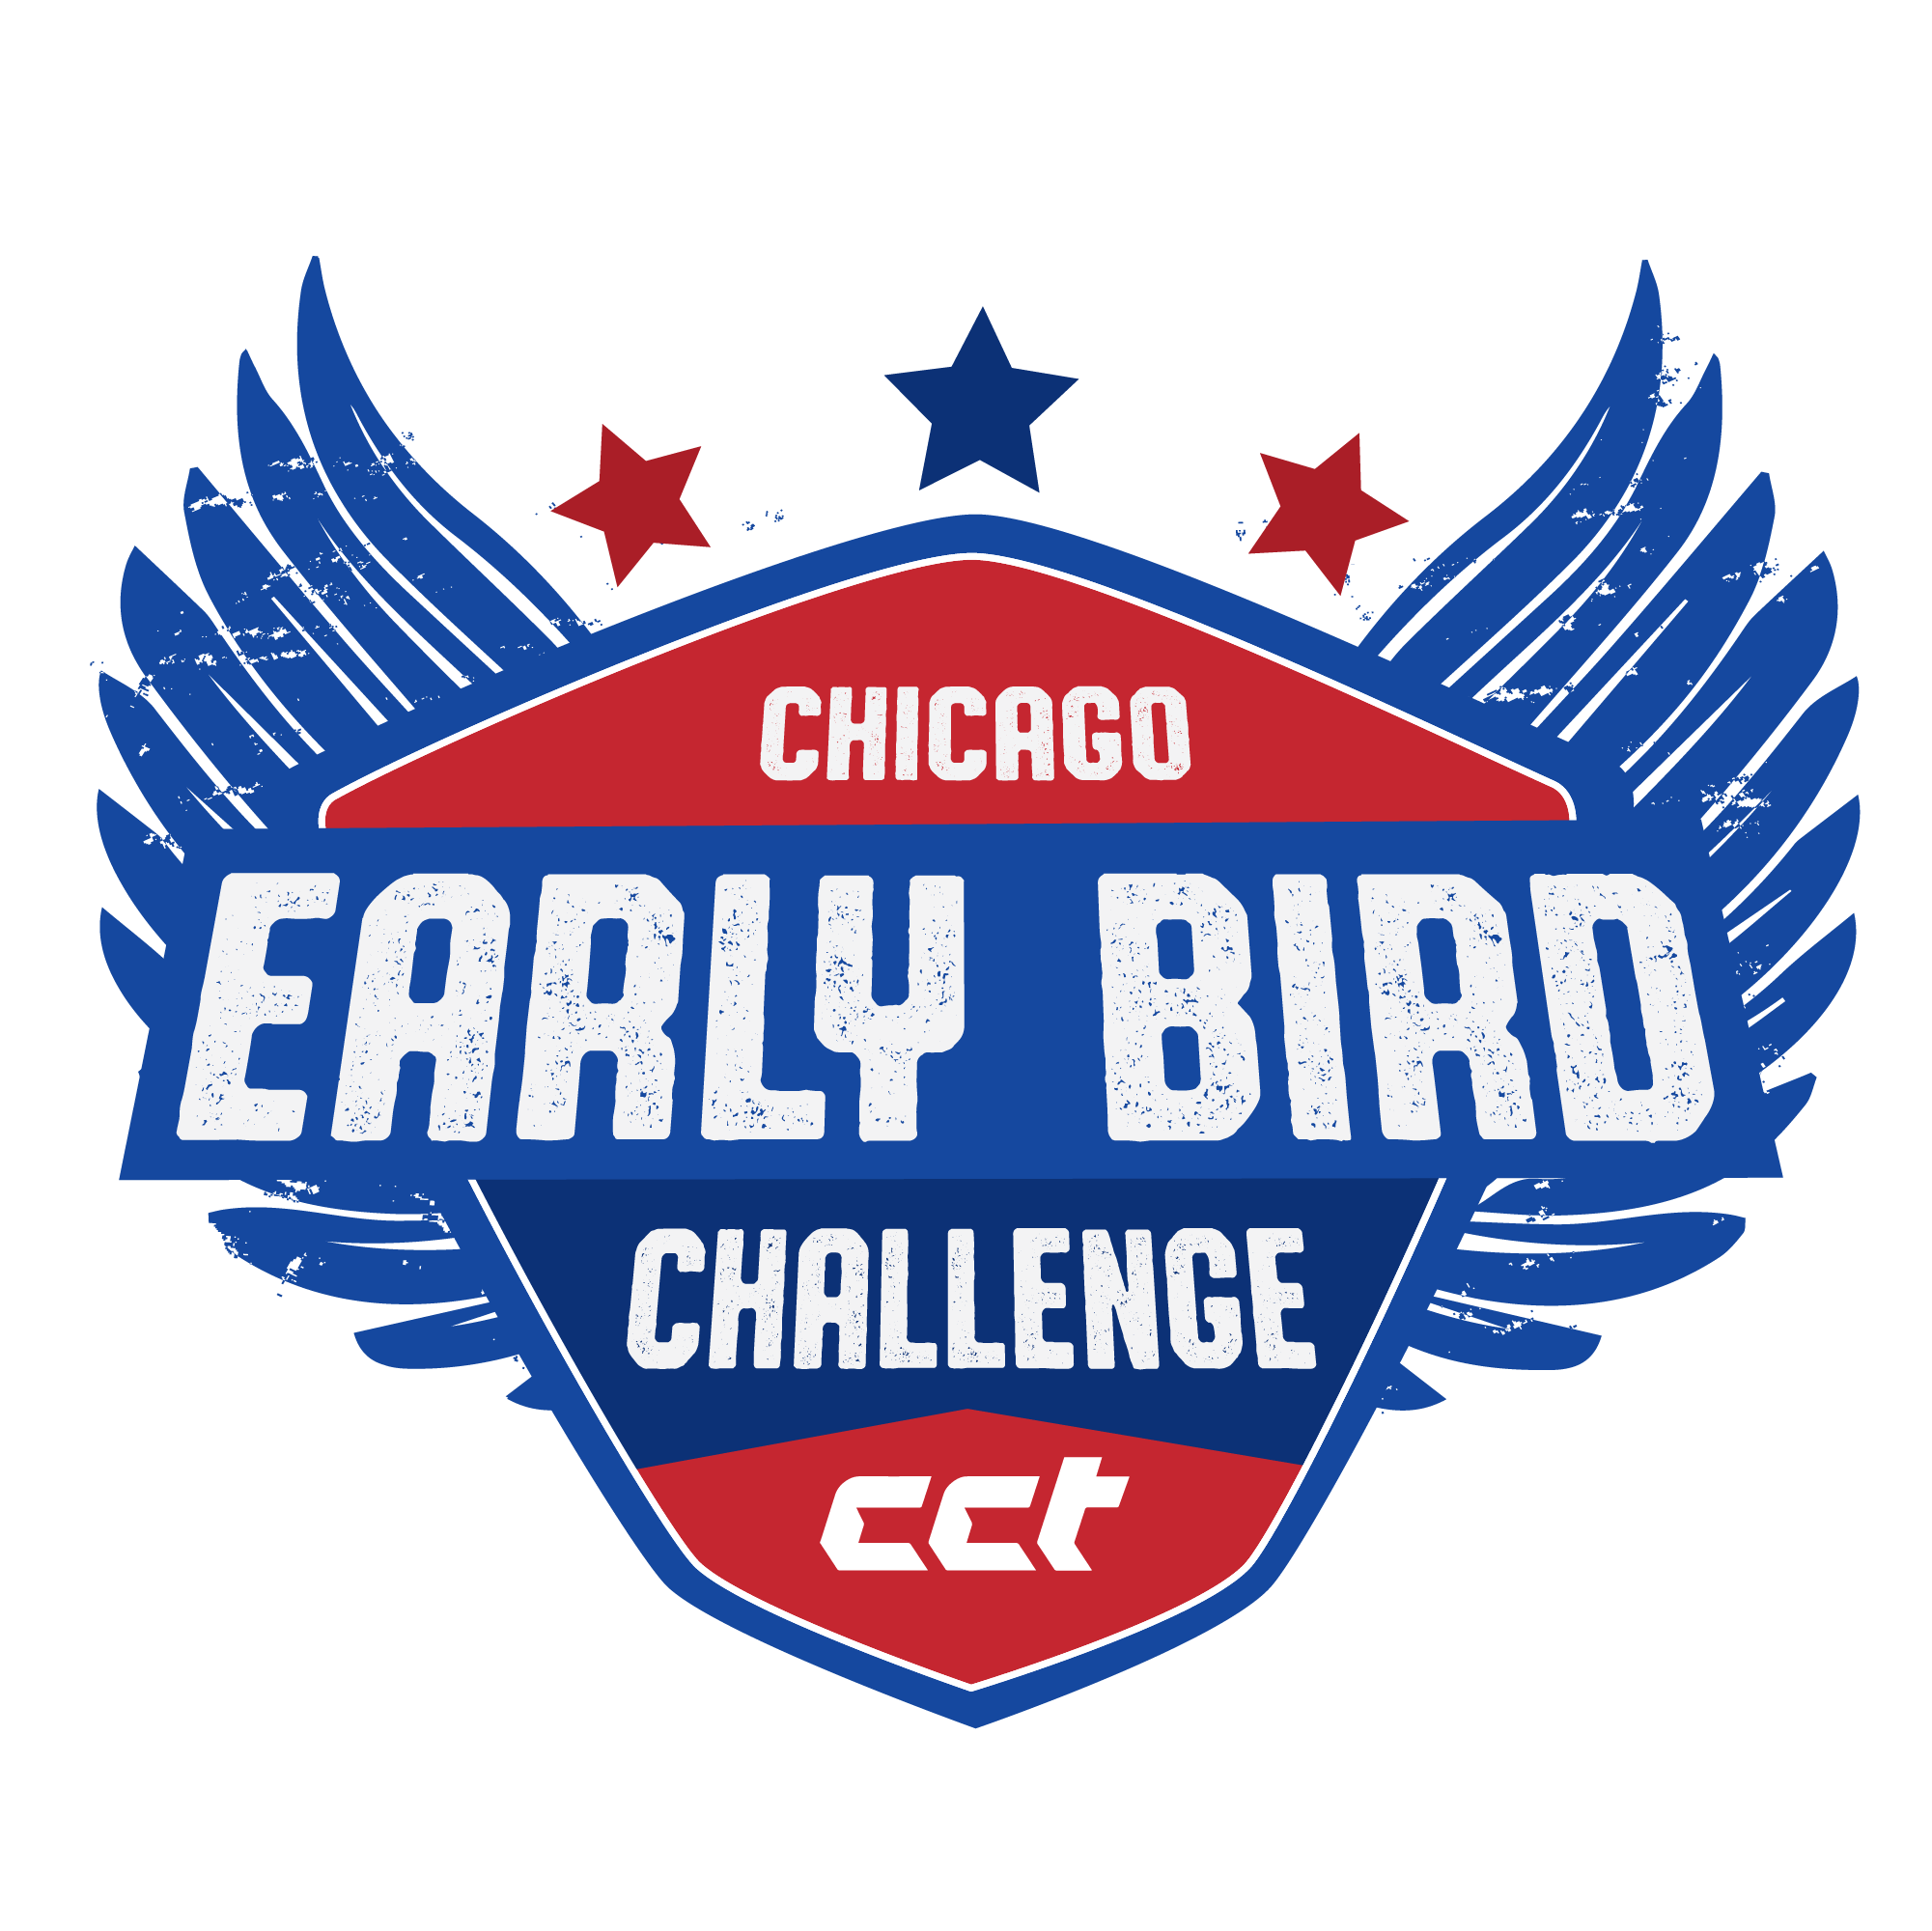 Bag tournament crest png. Chicago early bird challenge